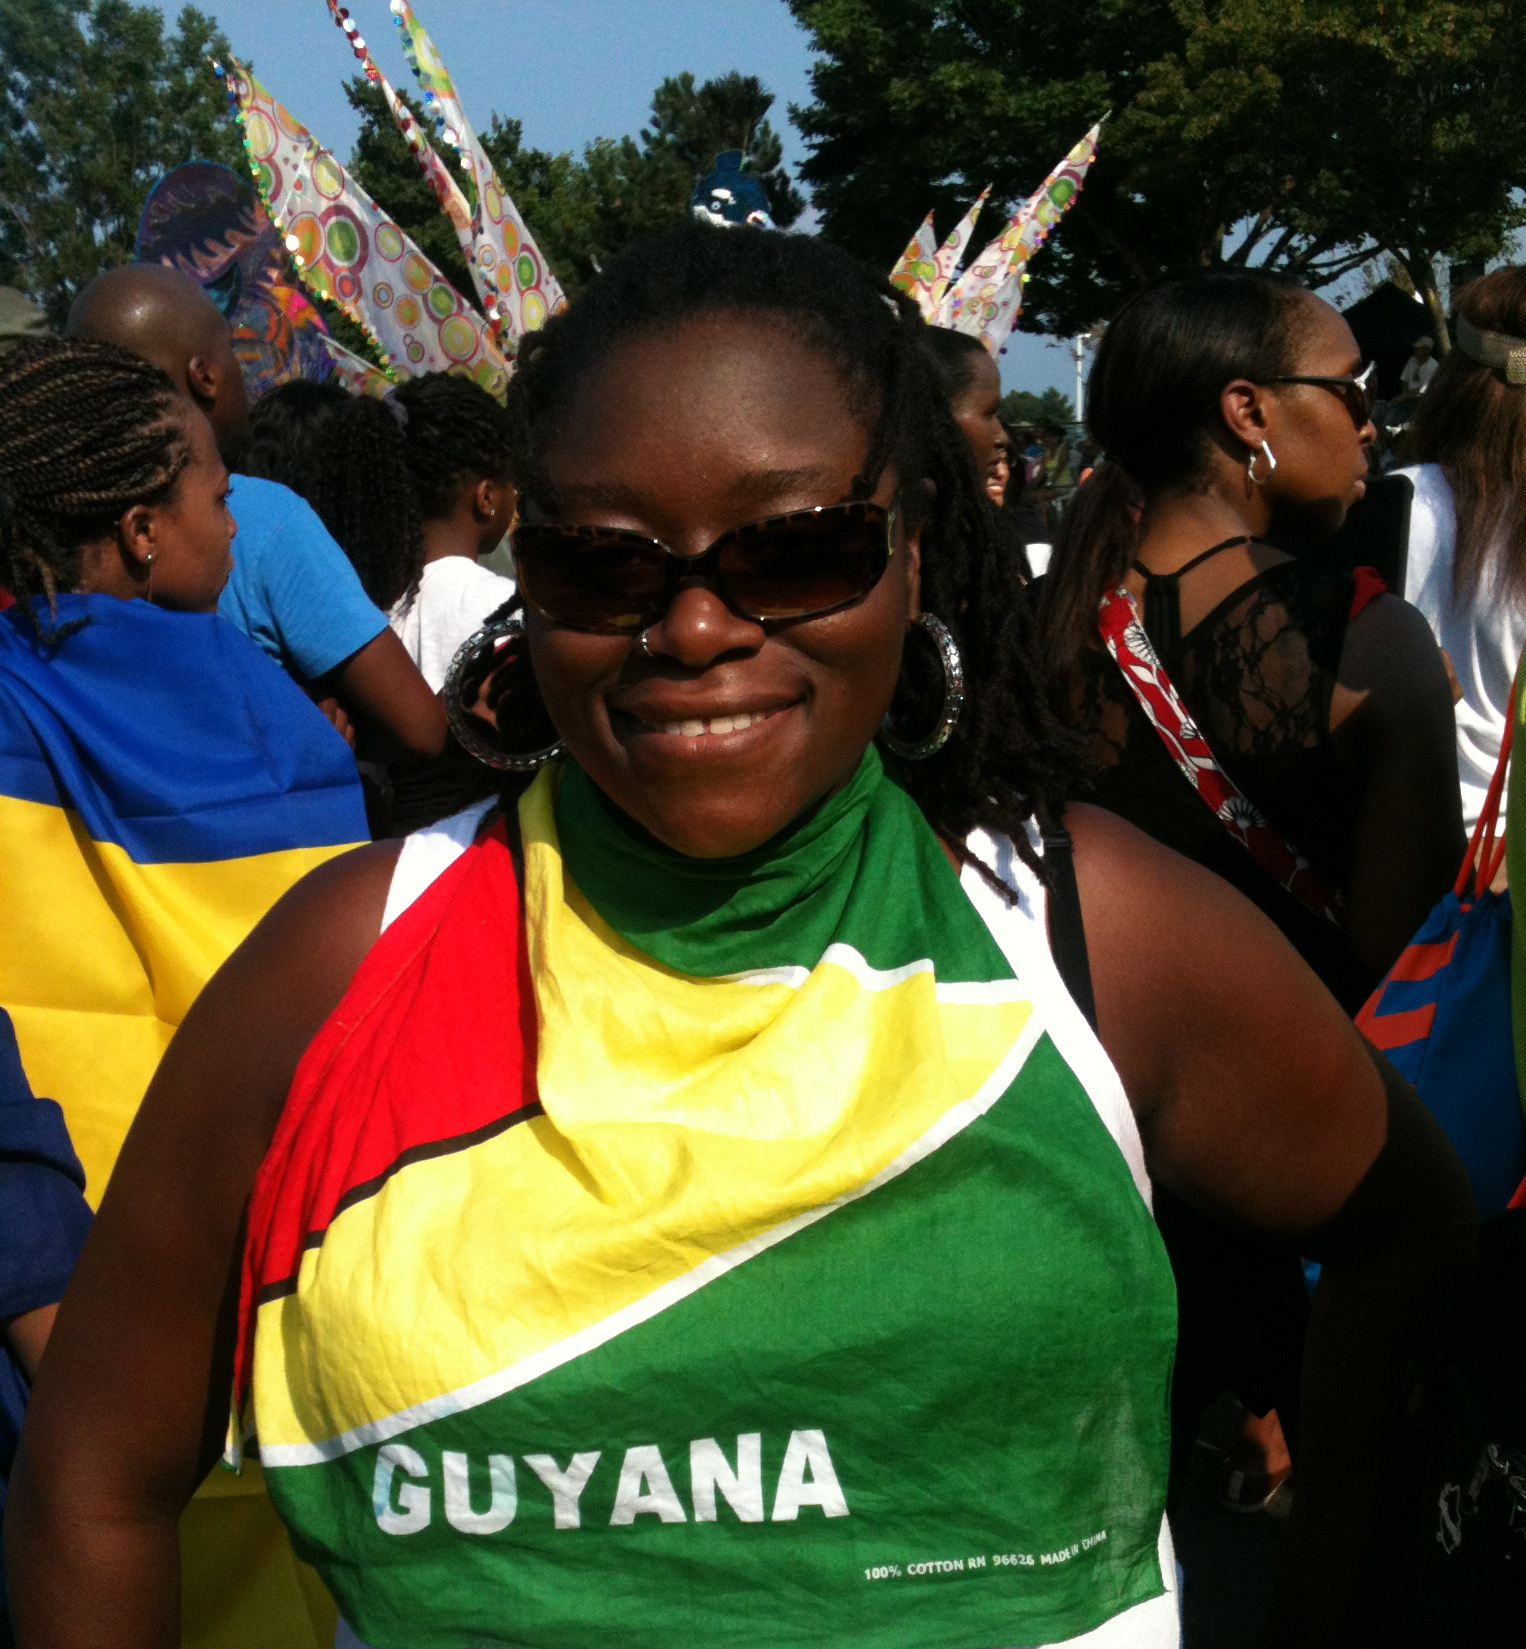 Copy of DysChick at Caribana (Toronto 2012)